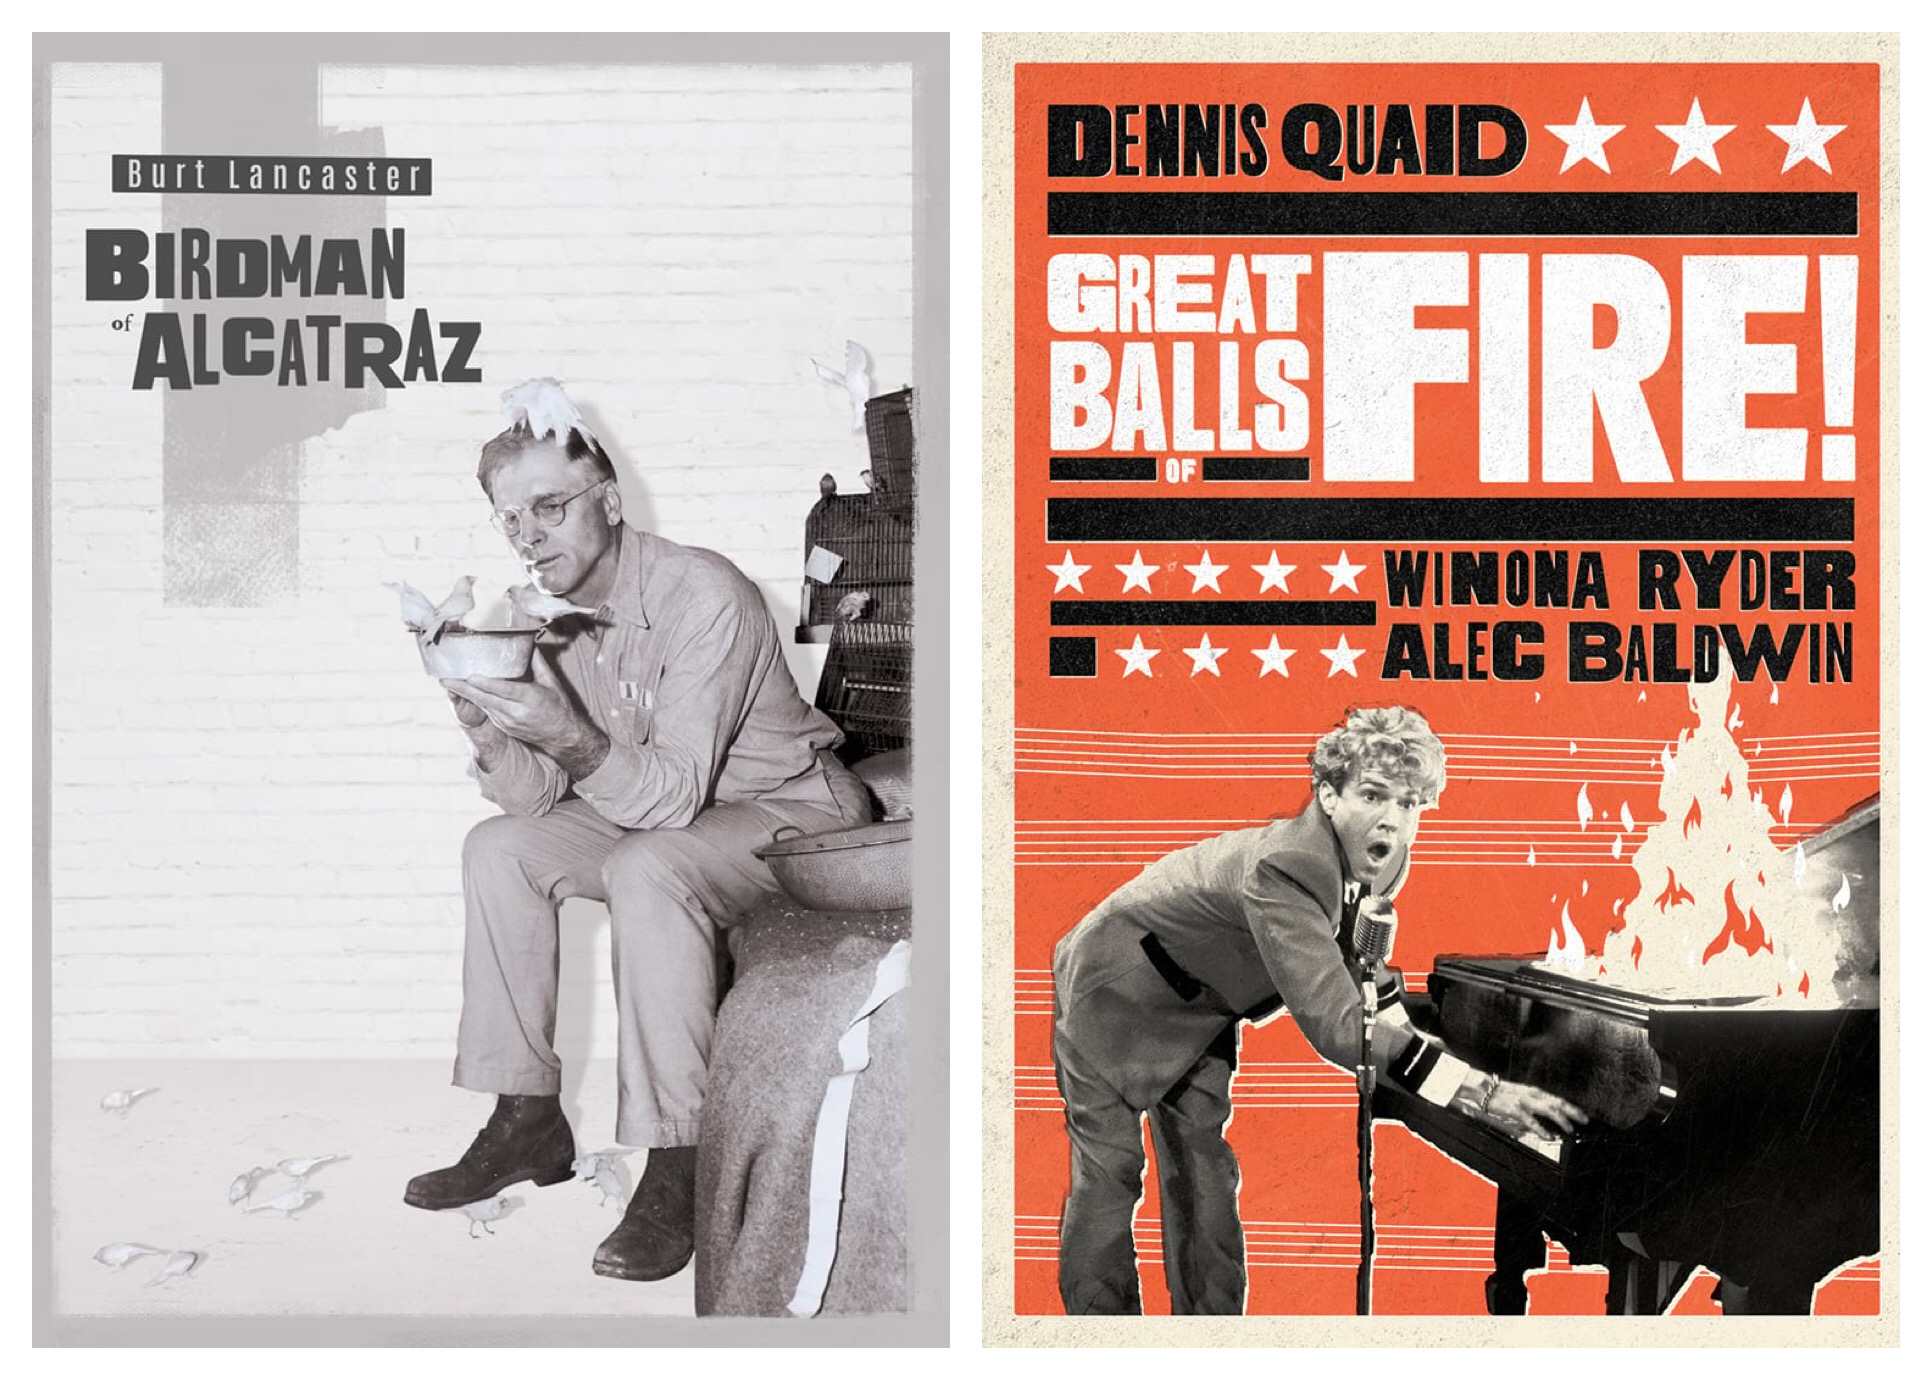 Birdman of Alcatraz & Great Balls of Fire! - Both from Olive Films